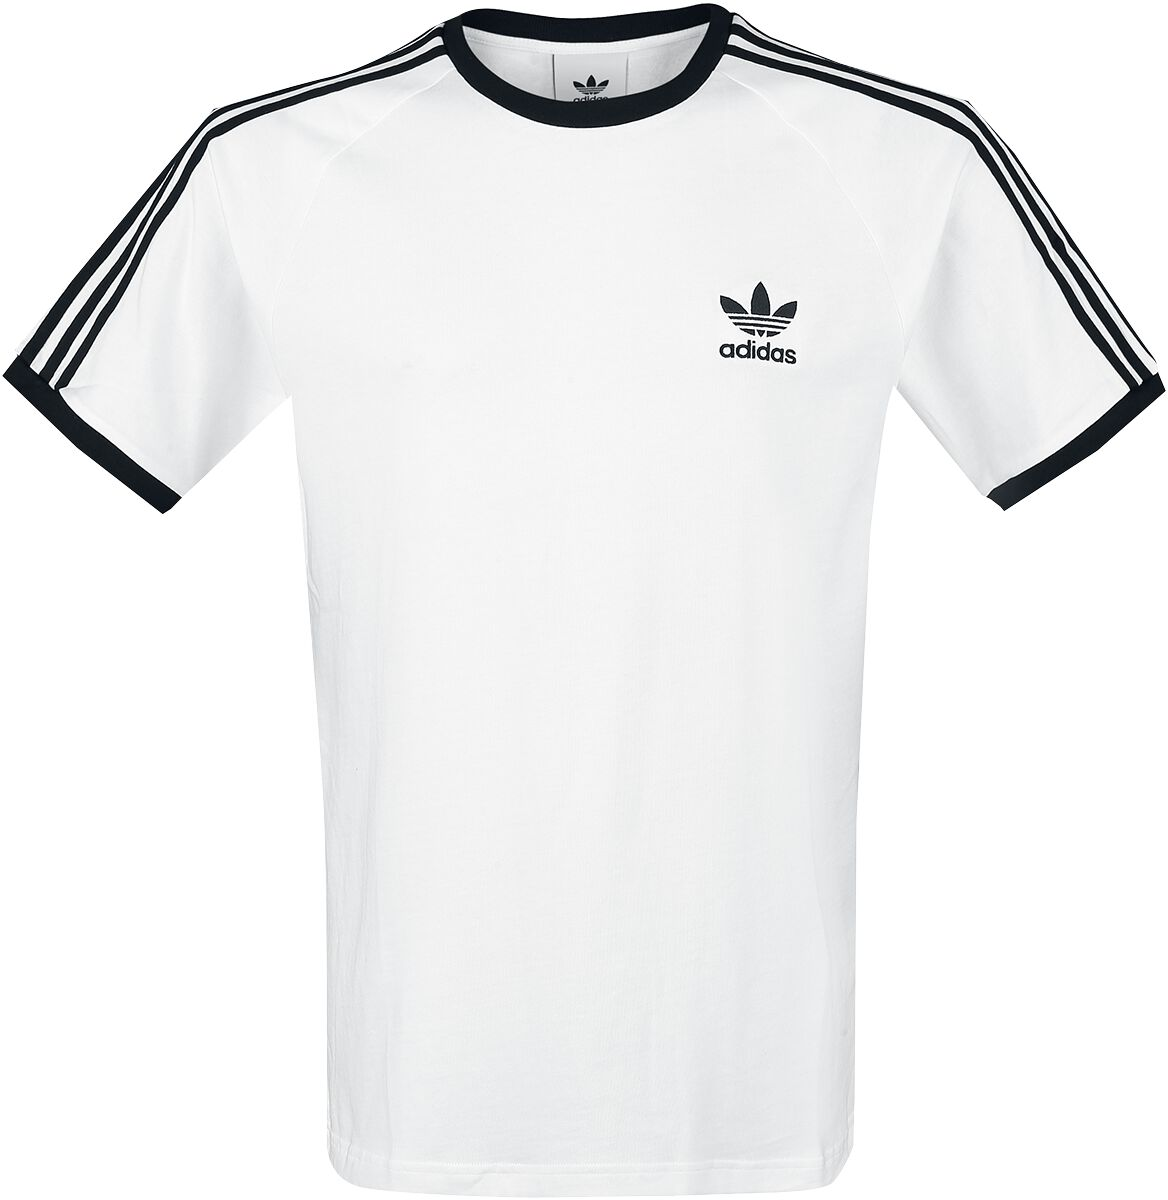 Image of   Adidas 3-Stripes Tee T-Shirt hvid-sort